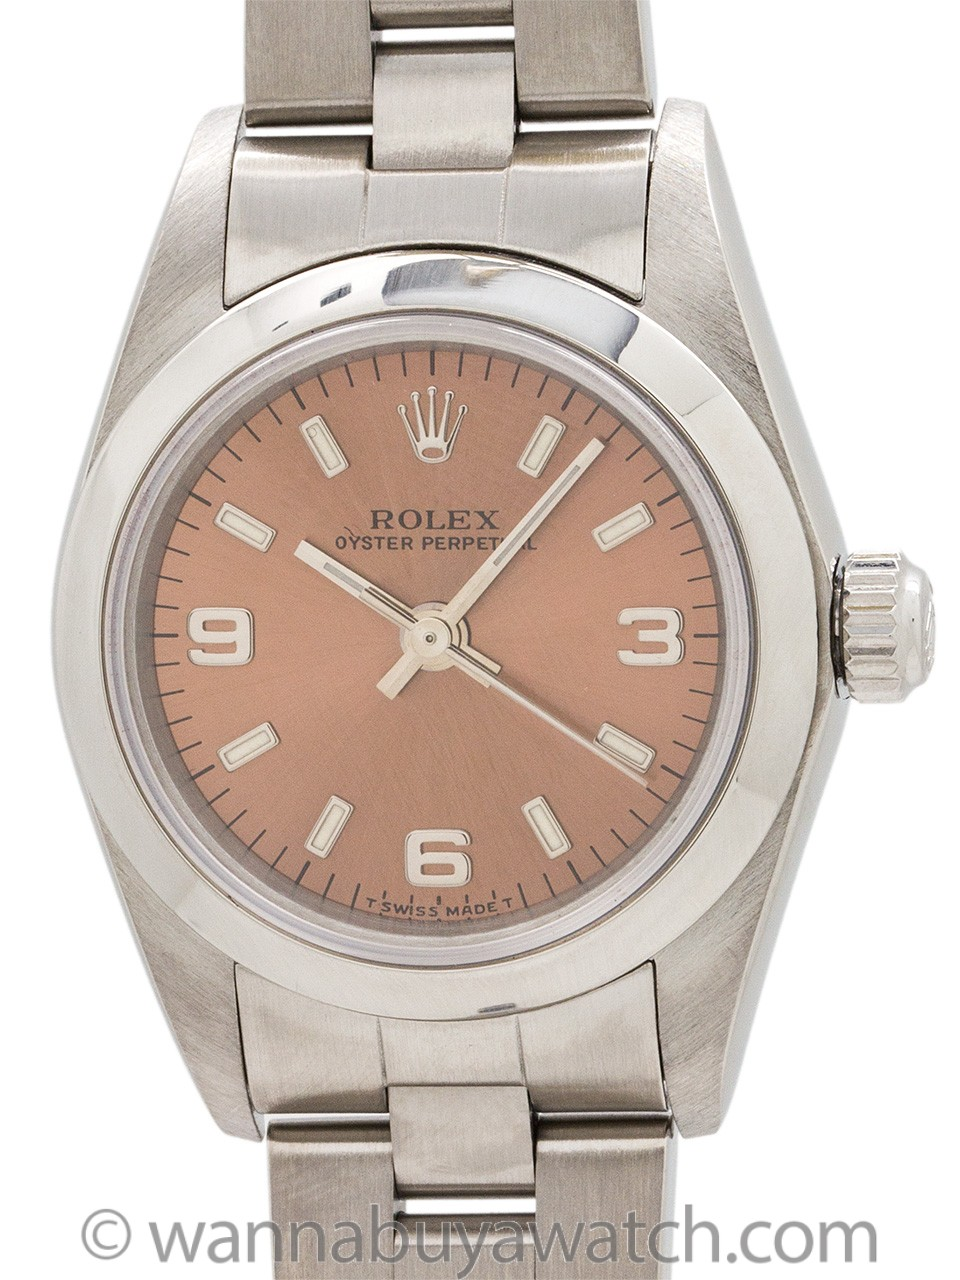 Lady Rolex Oyster Perpetual ref 76080 circa 1998